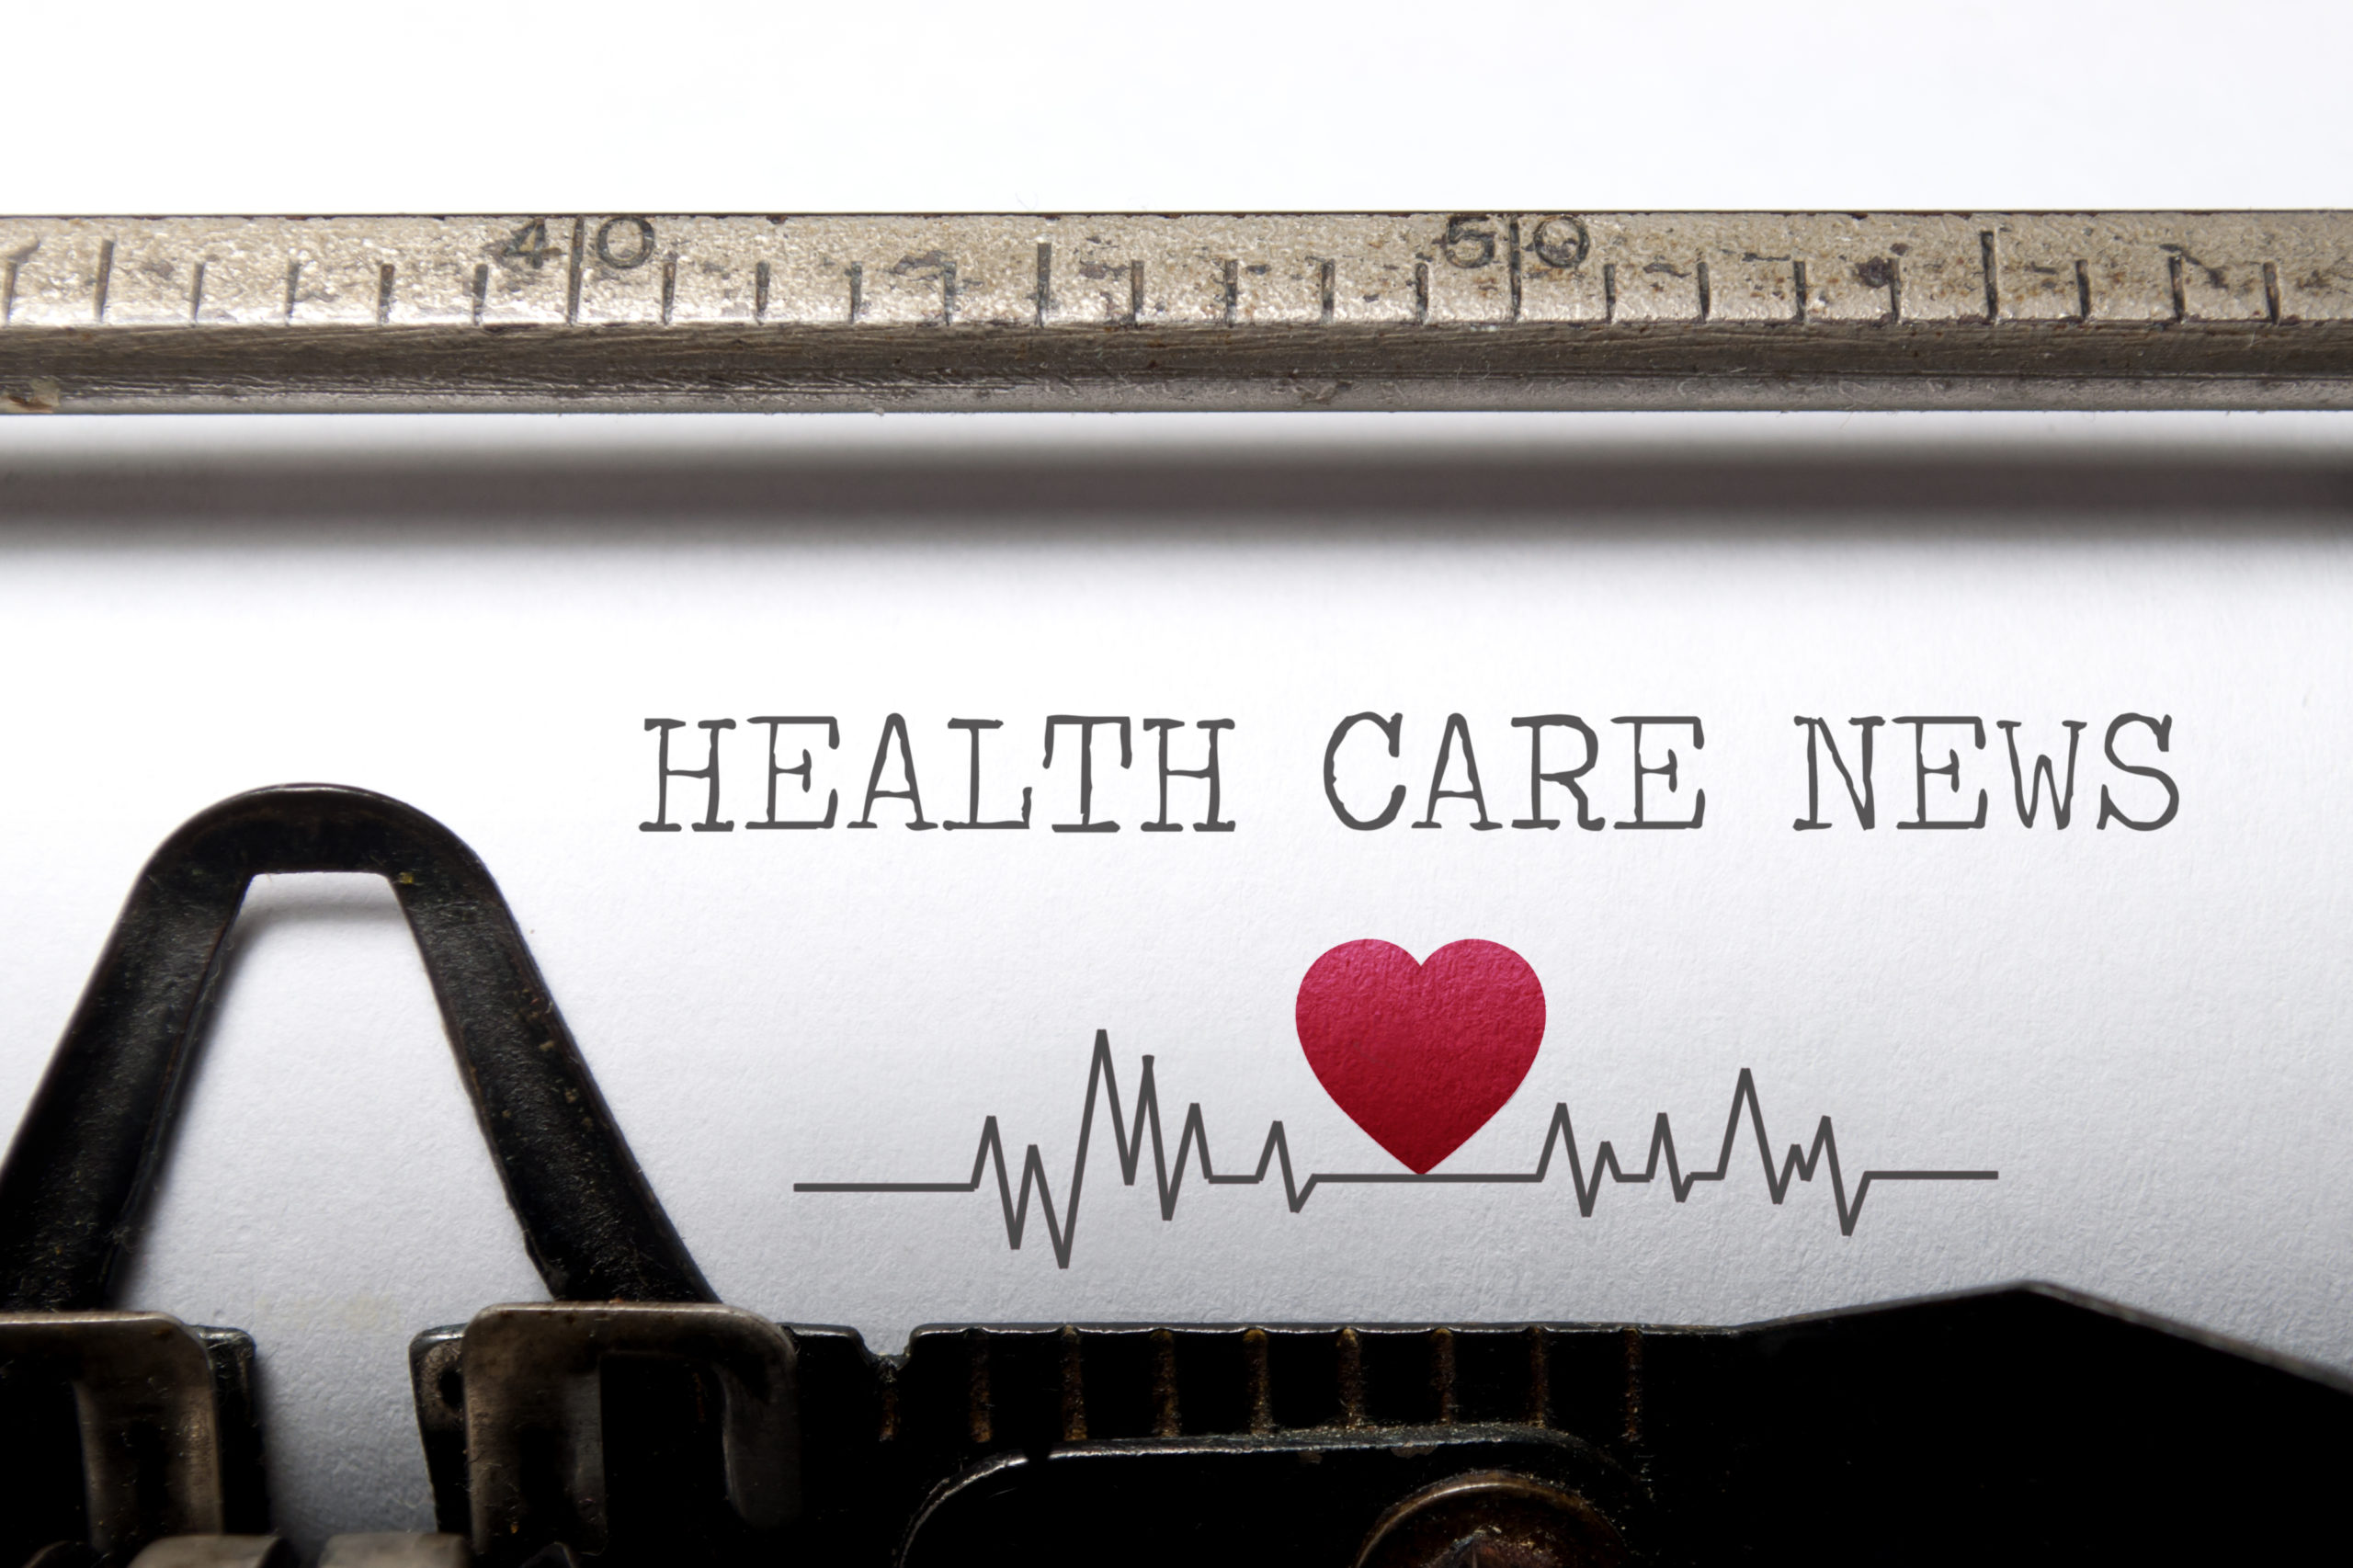 Health care news printed on an old typewriter with heart beat pulse sketch.